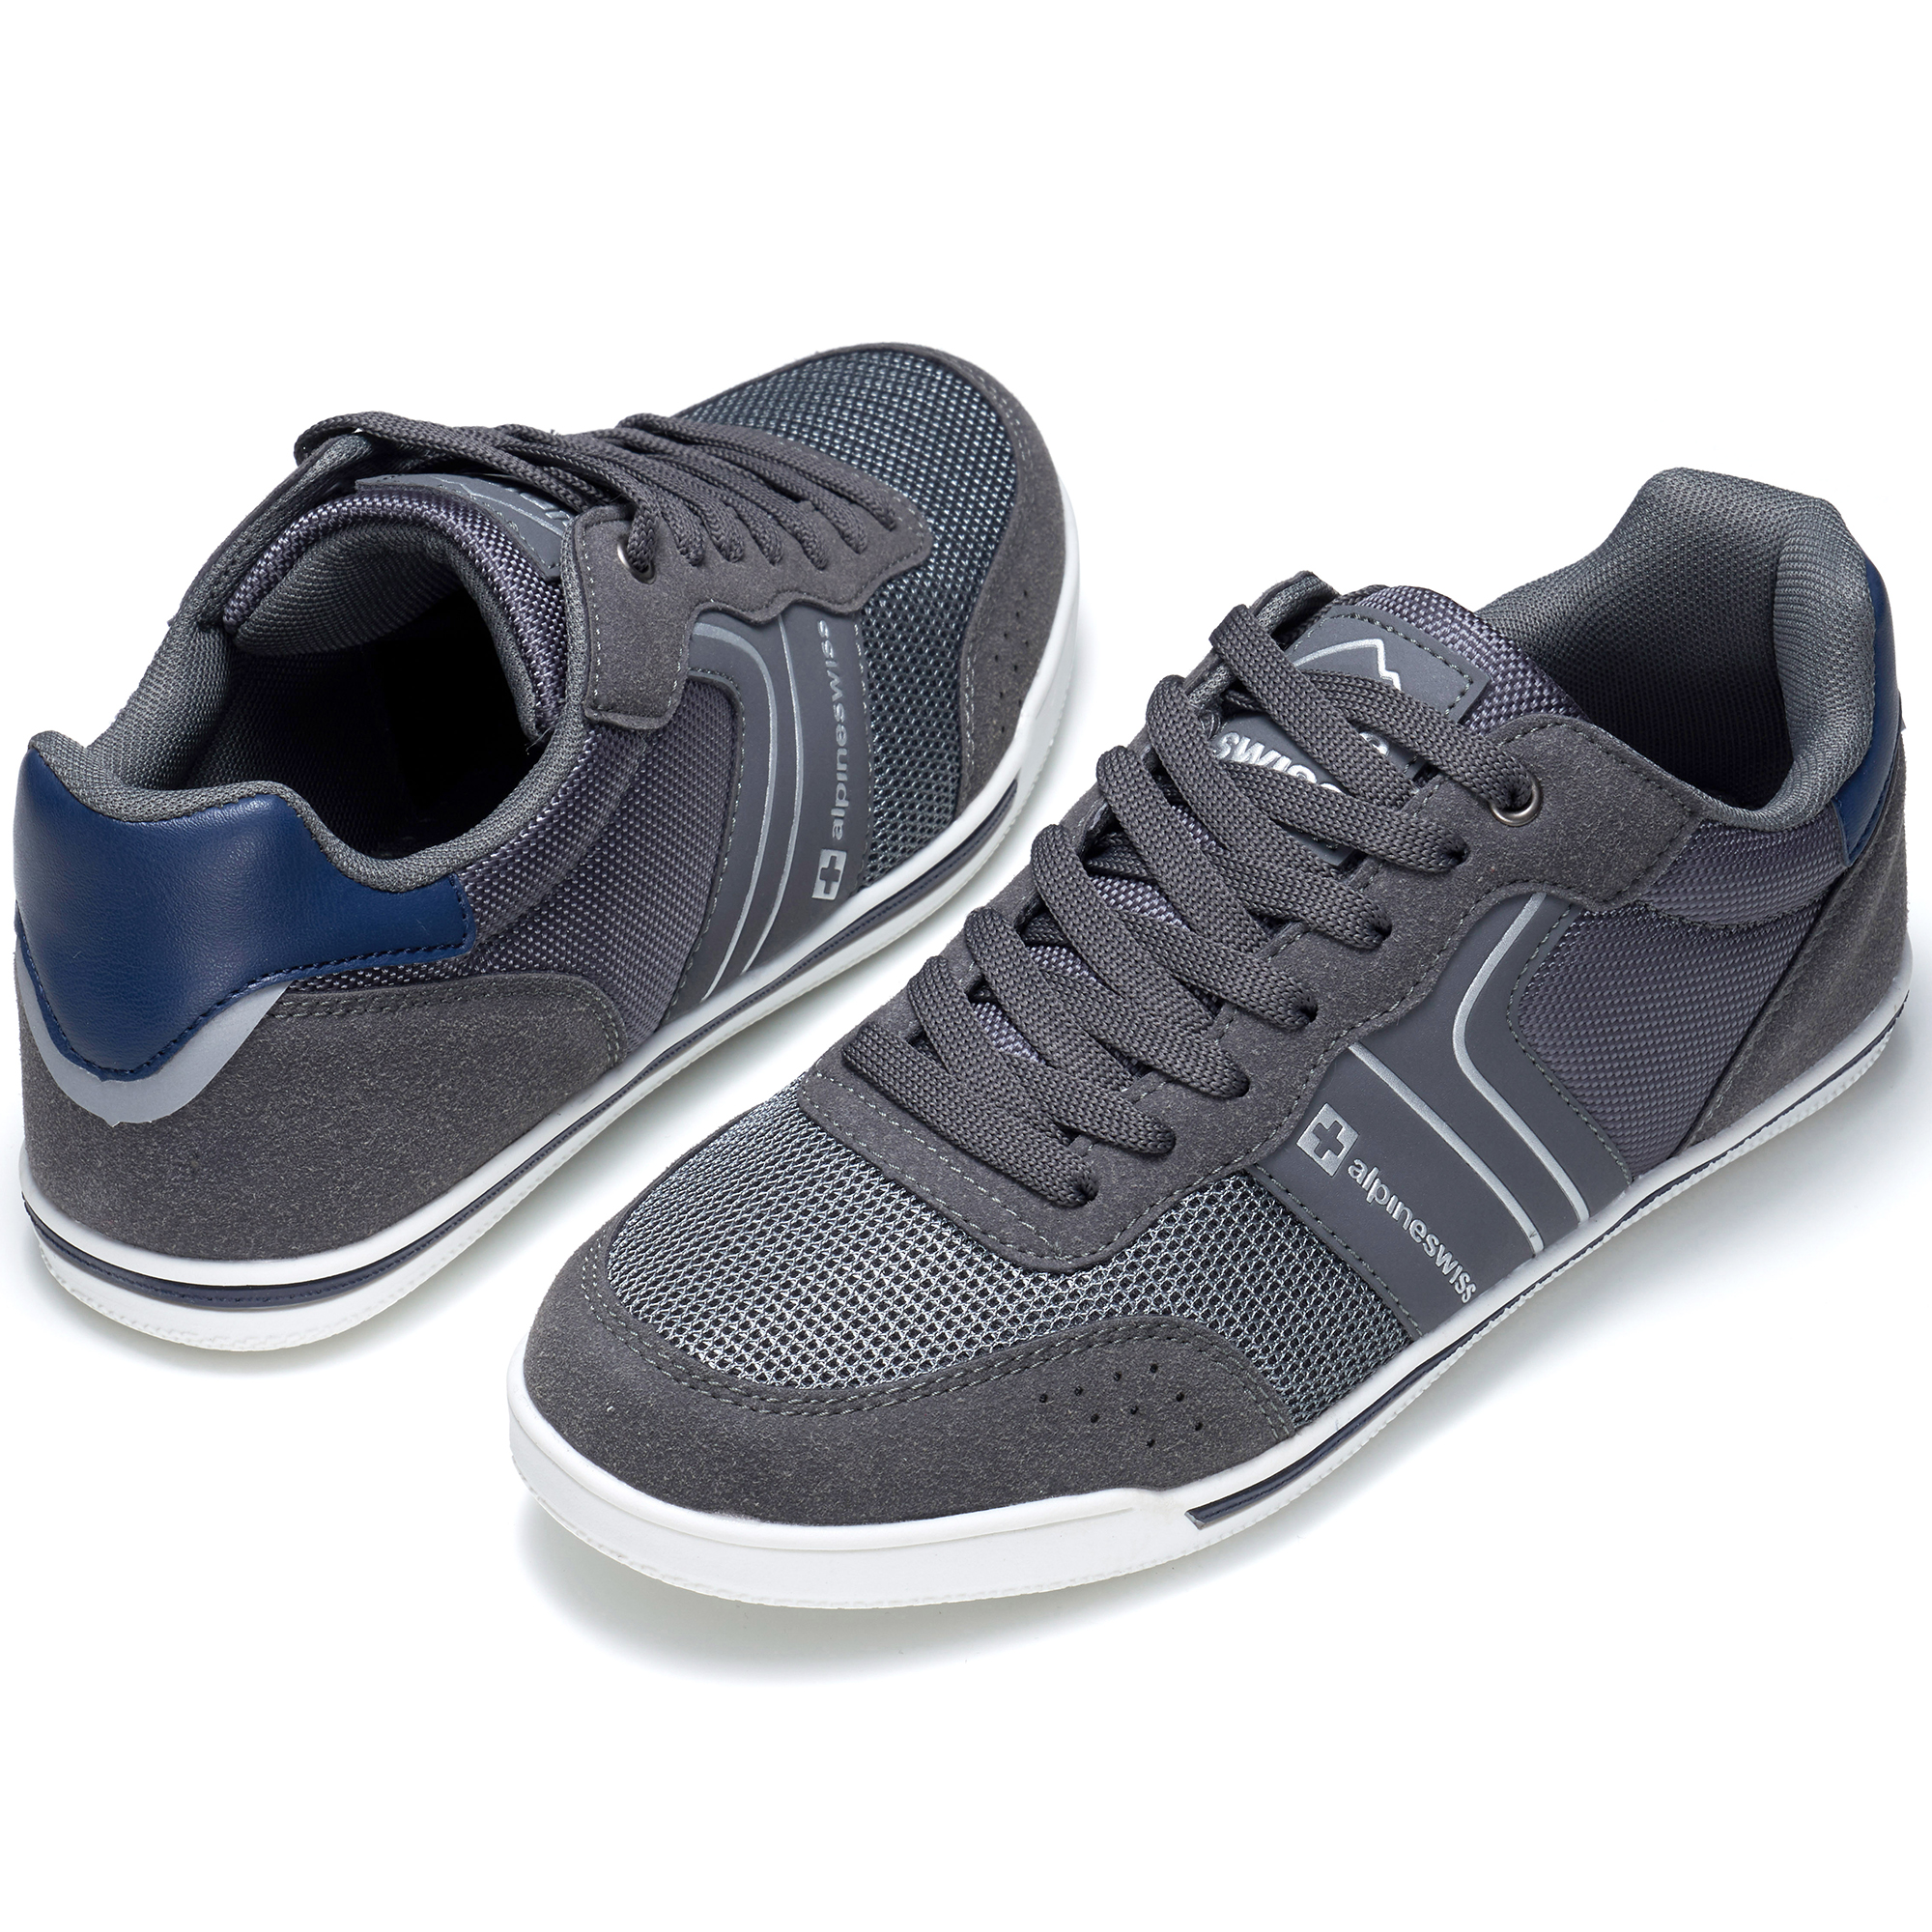 Alpine-Swiss-Liam-Mens-Fashion-Sneakers-Suede-Trim-Low-Top-Lace-Up-Tennis-Shoes thumbnail 24